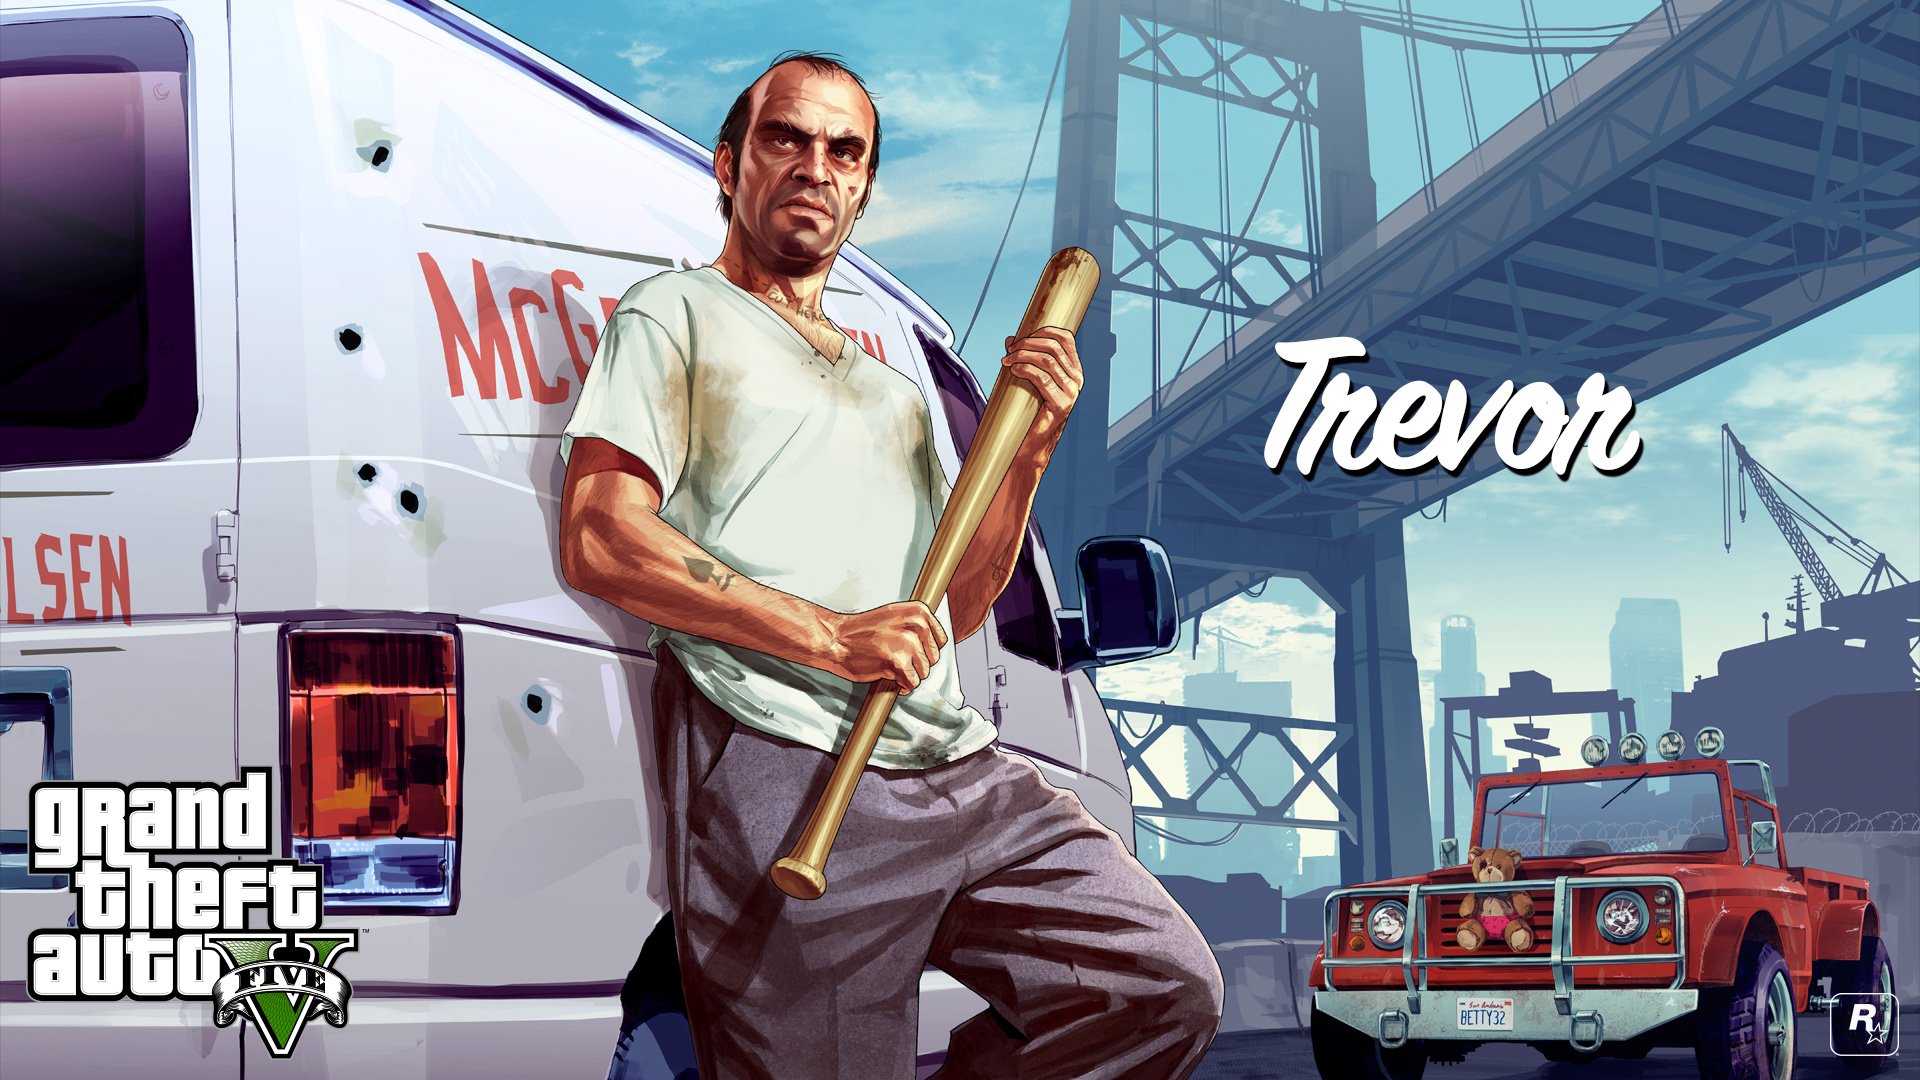 GTA V - Trevor_with_van_1920x1080.jpg